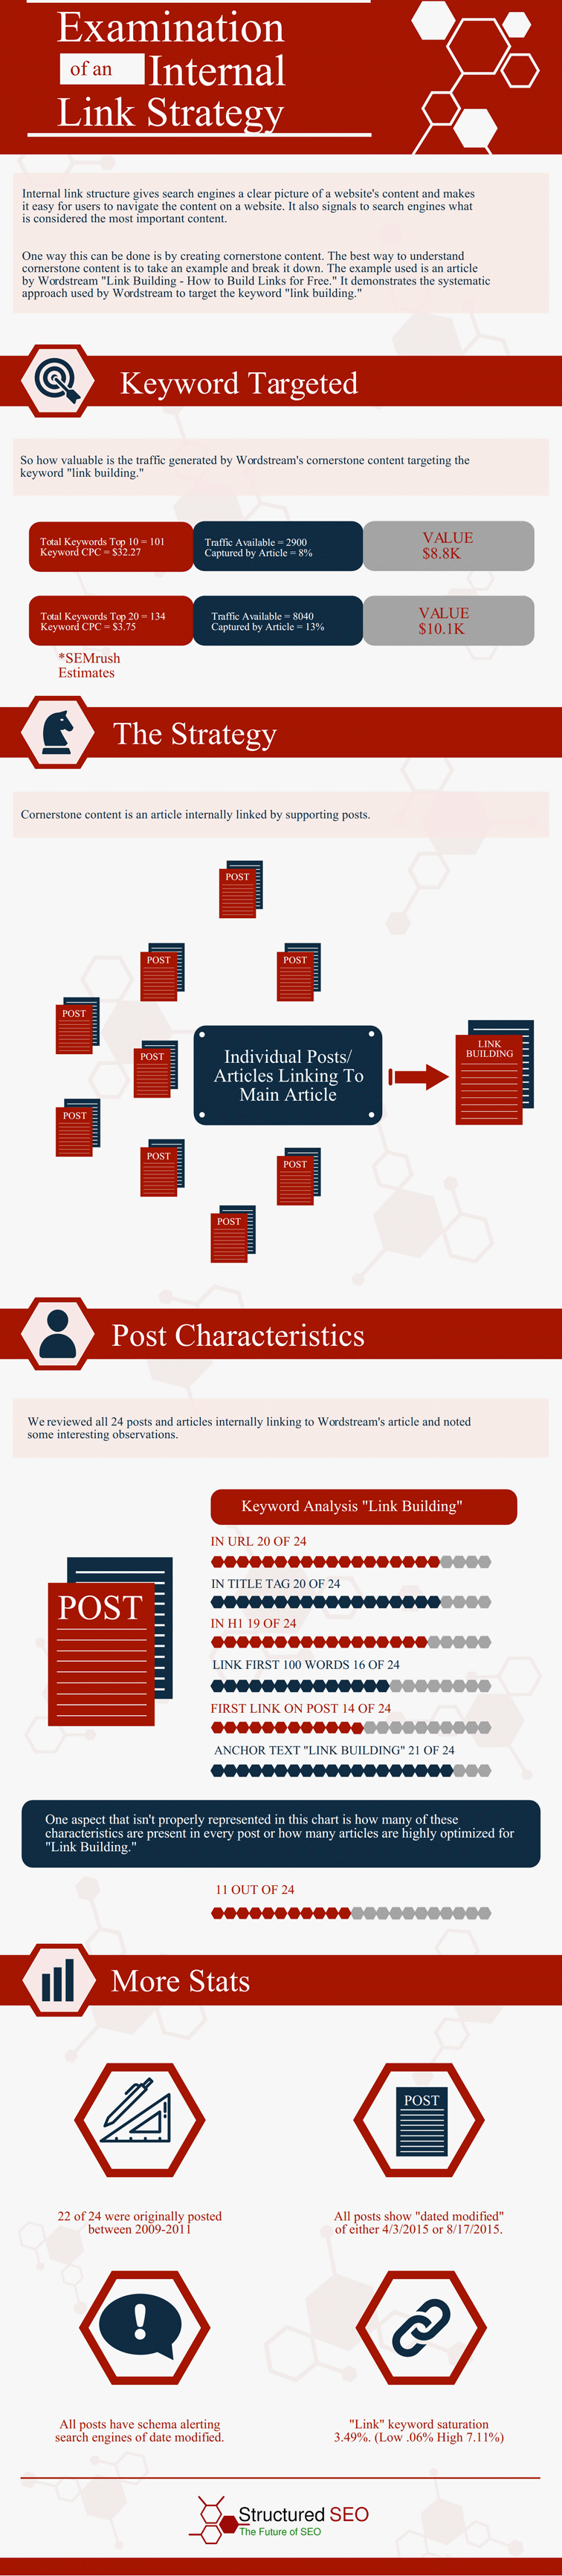 examination-of-an-internal-link-strategy-infographic